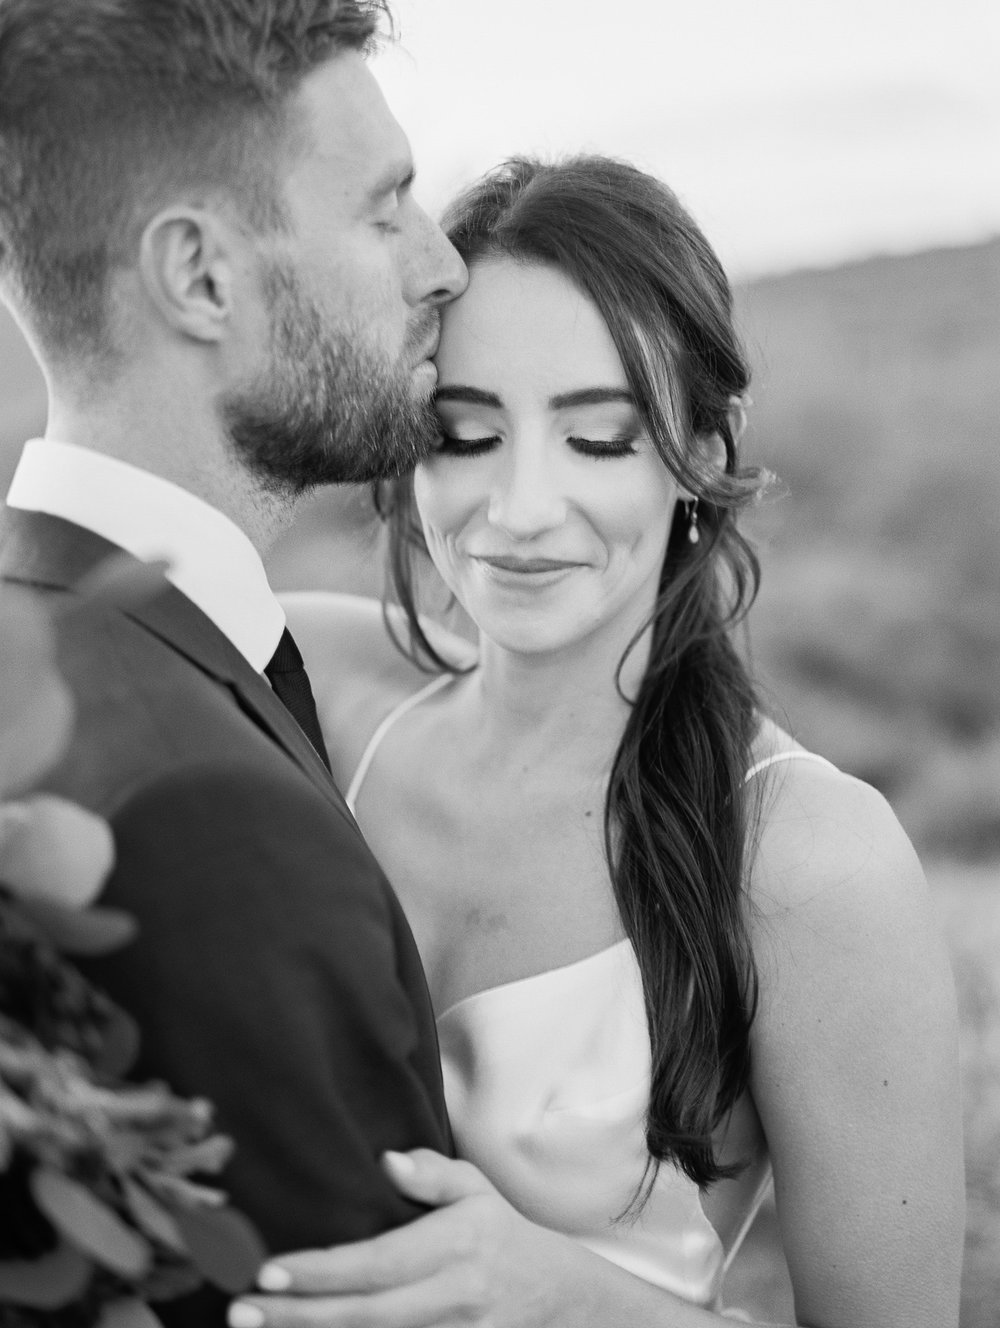 Kissing his bride's forehead. Romantic wedding day portrait in black and white.